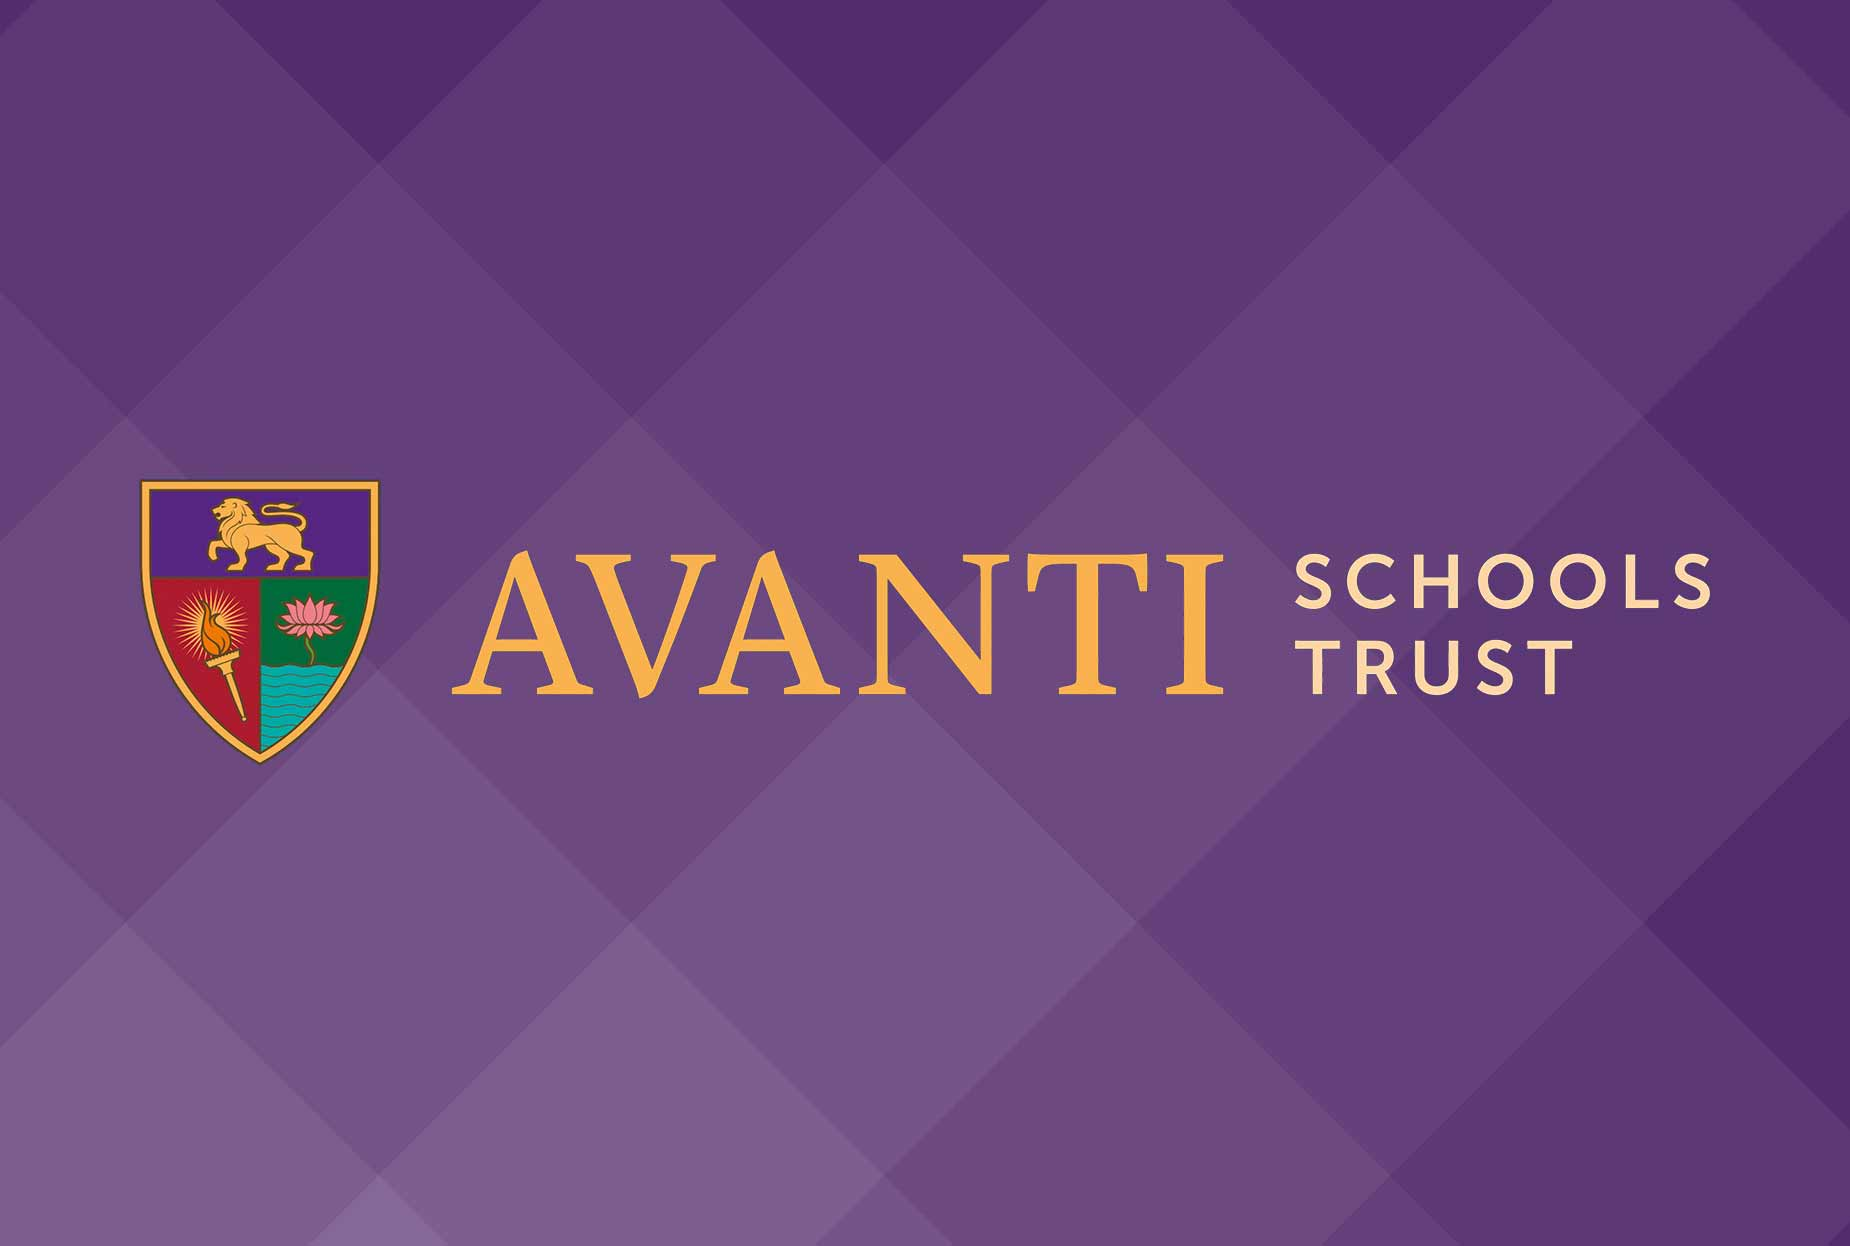 Statement in relation to the transfer of South West Steiner Academies to Avanti Schools Trust